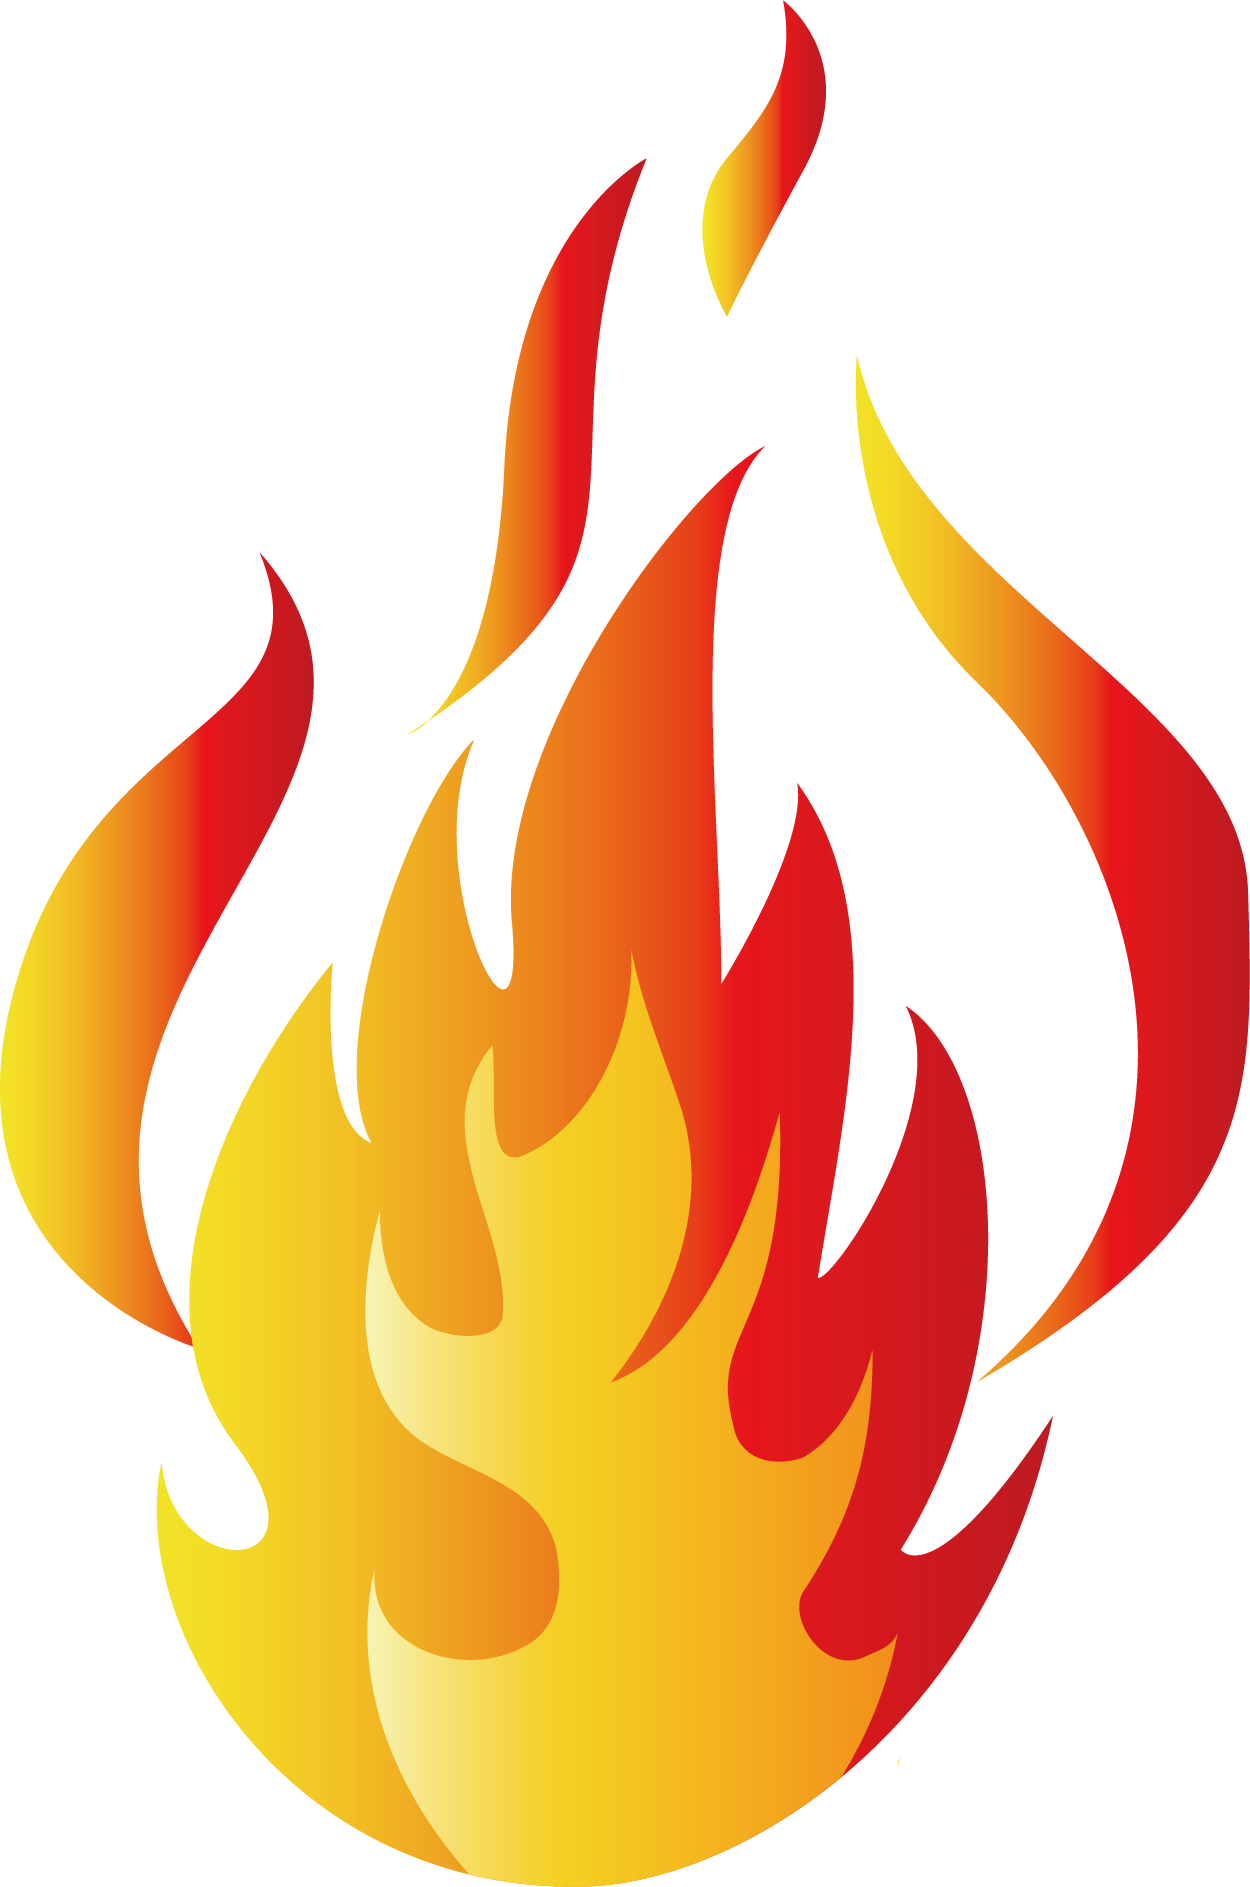 Cartoon flames png. Cool flame transprent free